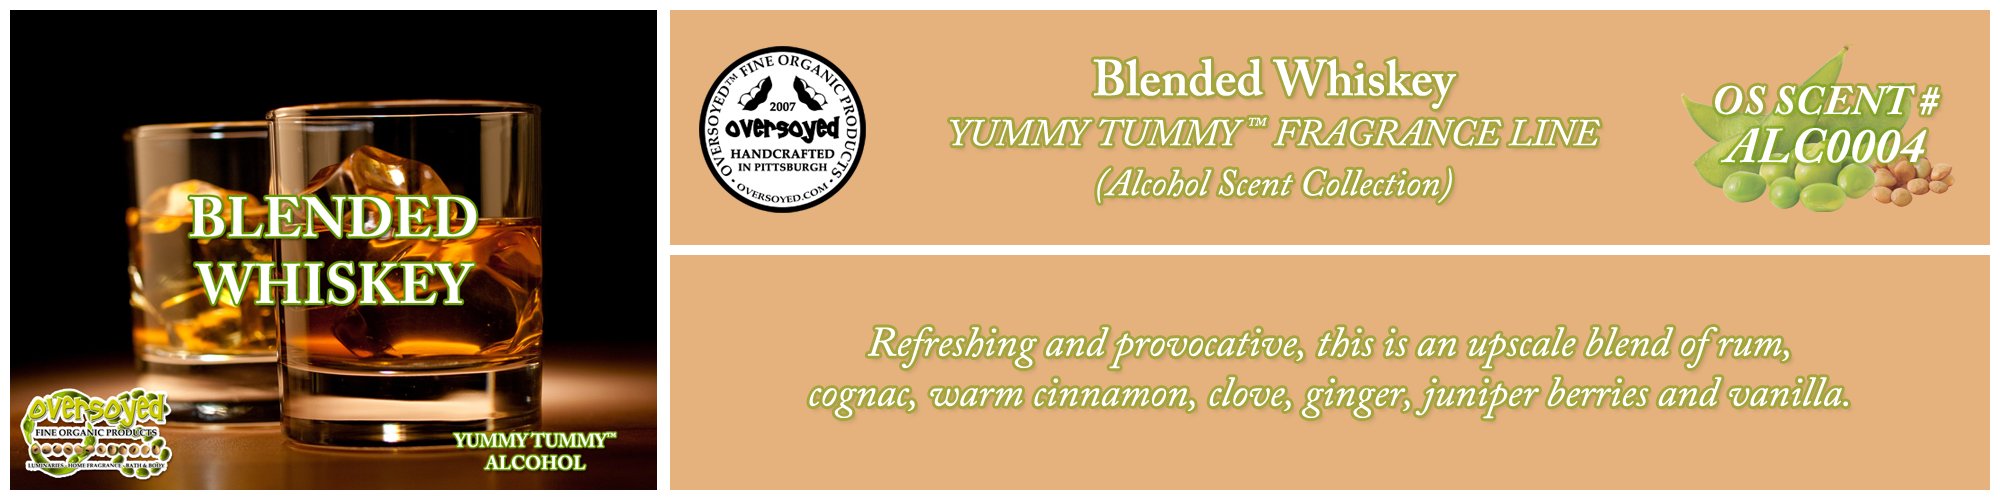 Blended Whiskey Handcrafted Products Collection